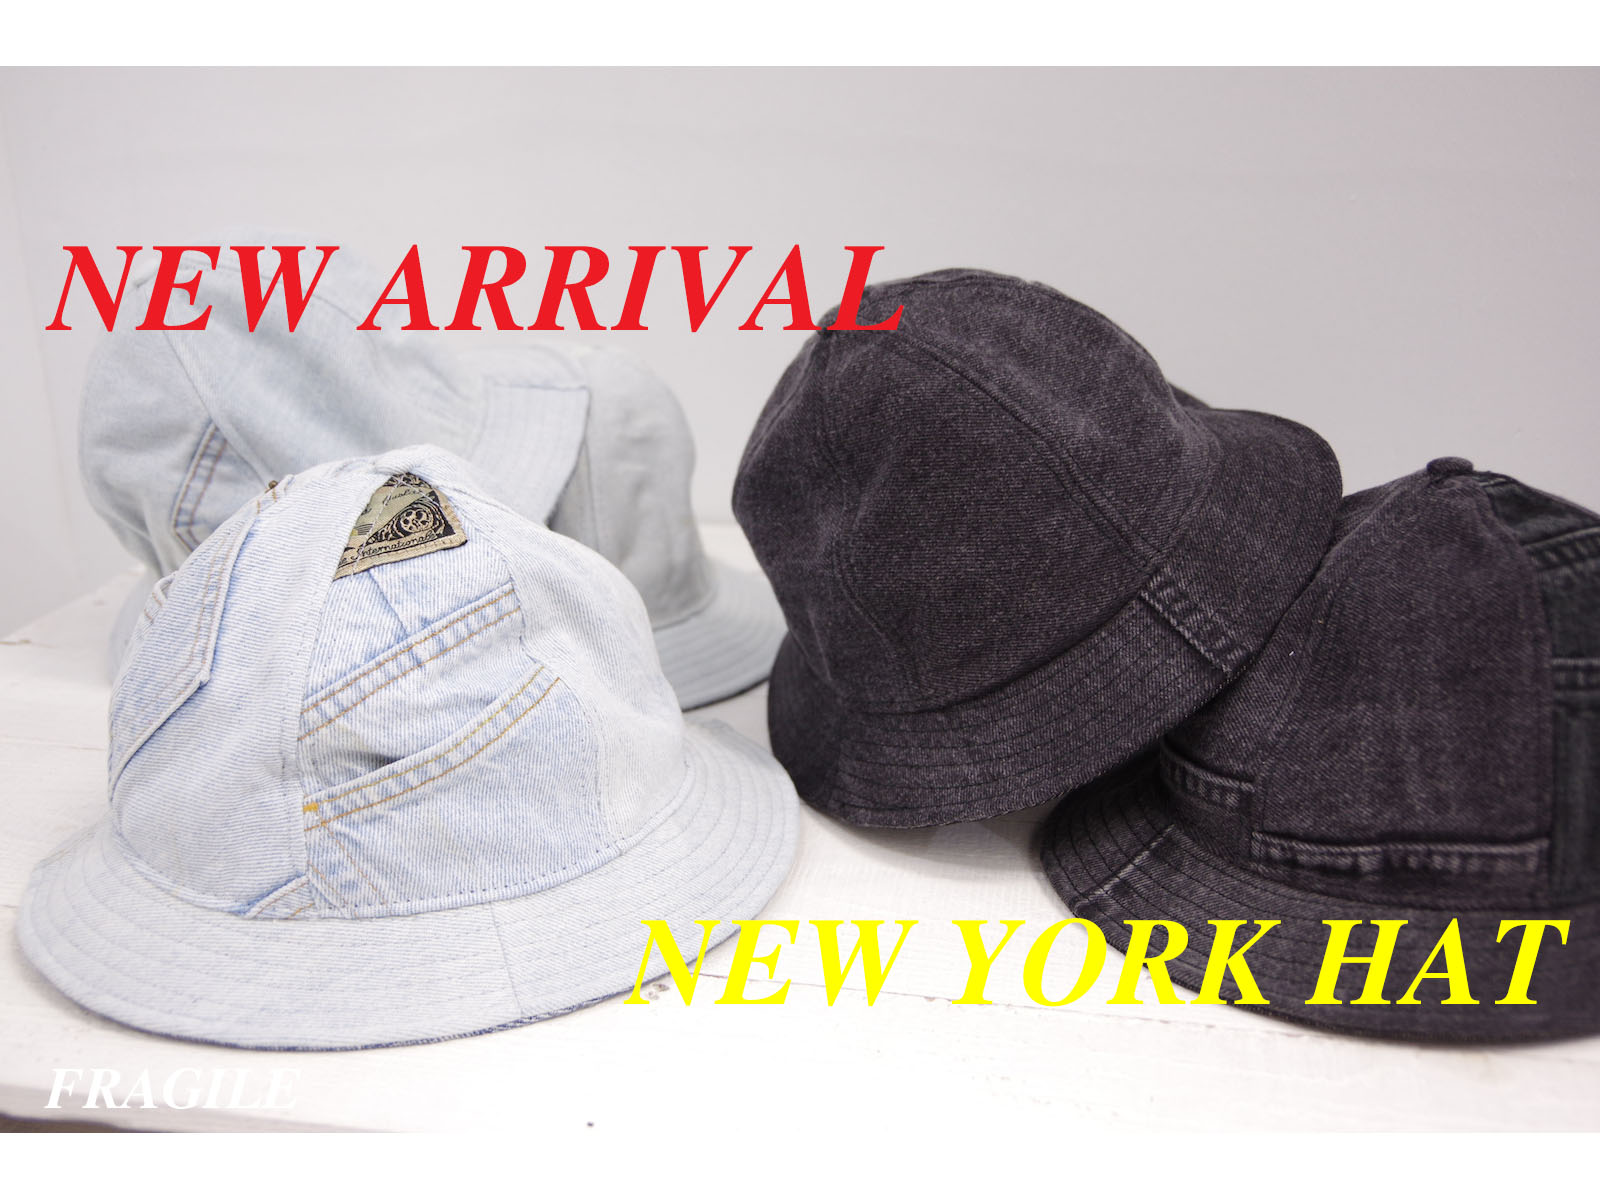 NEW ARRIVAL – NEW YORK HAT SPRING 2016